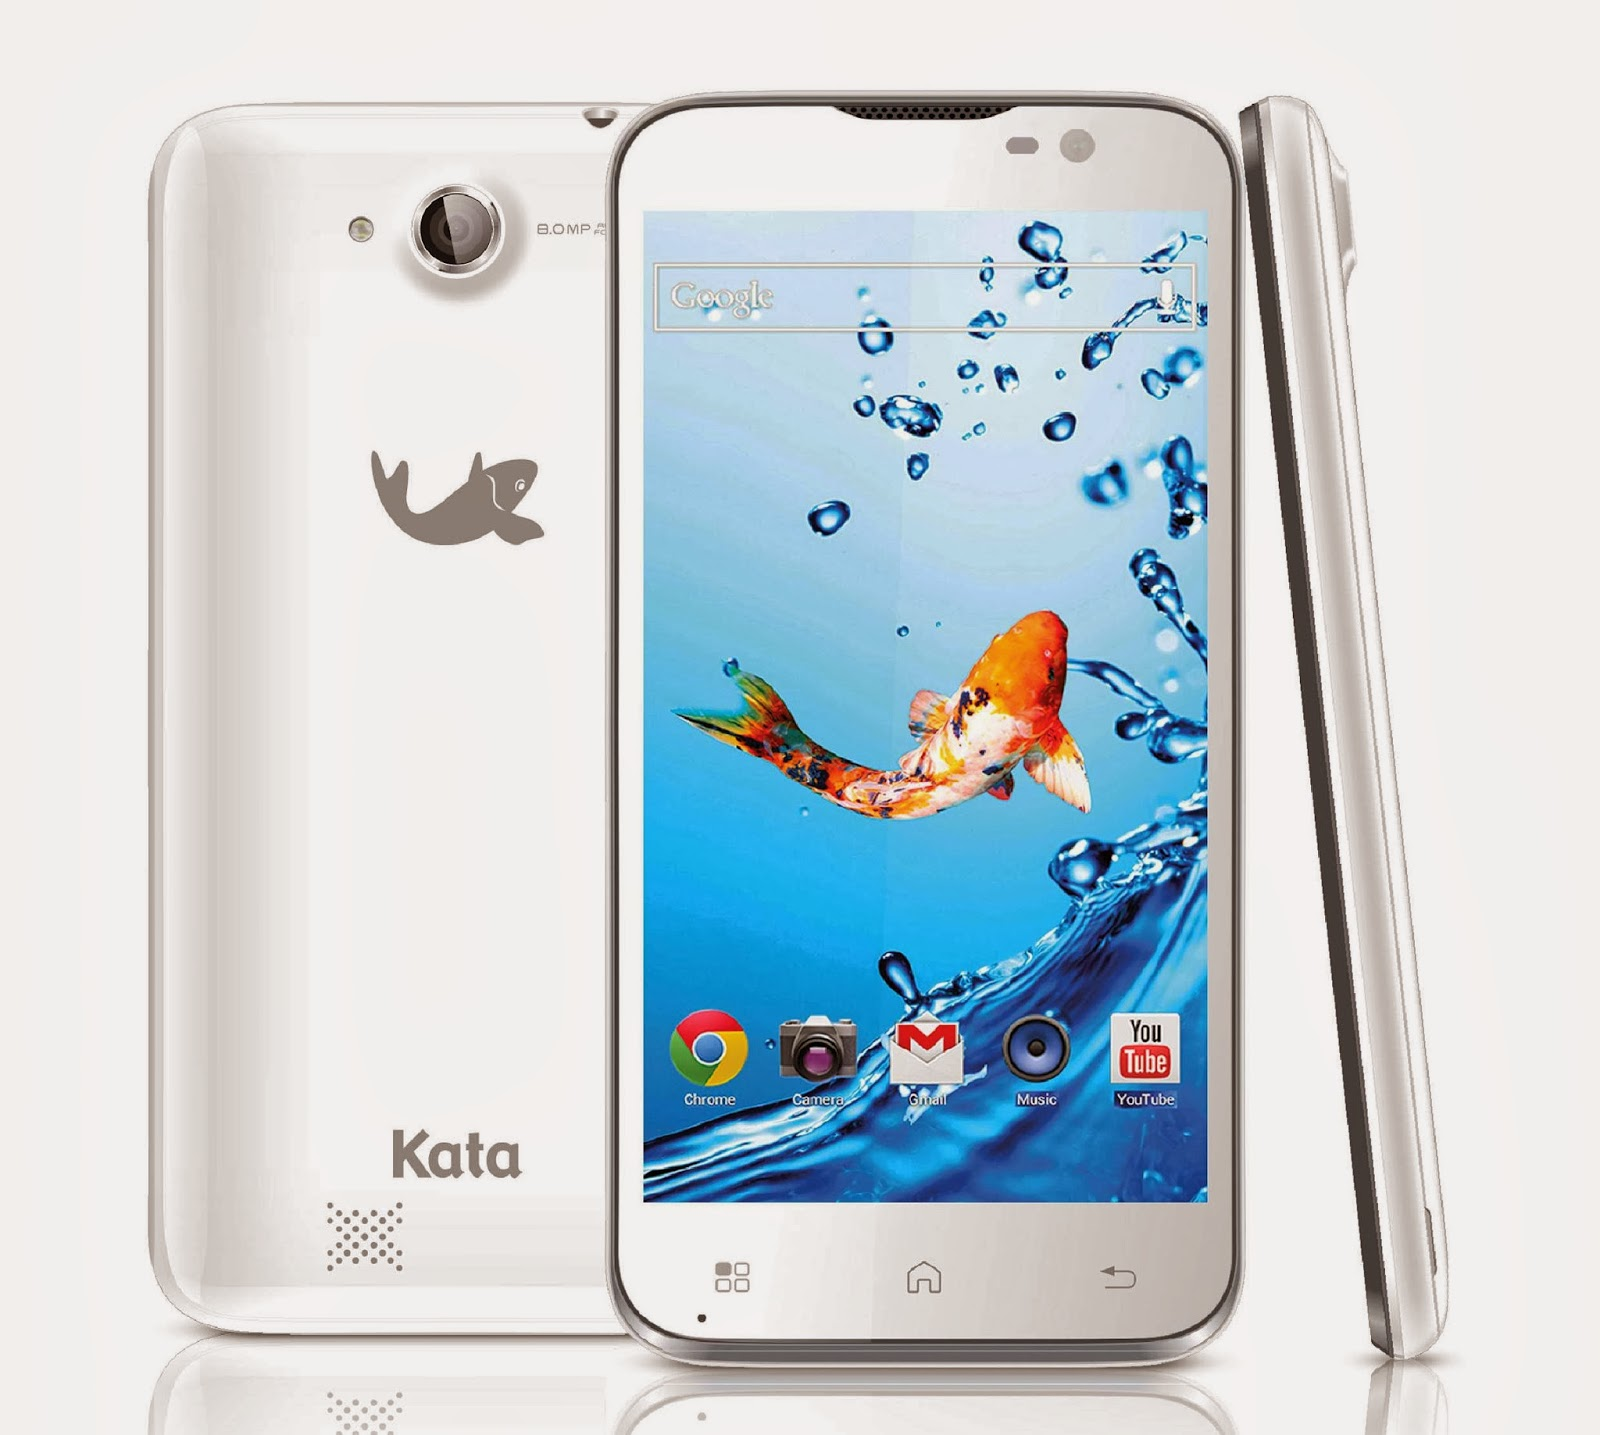 2013 Gadget Manila Samsung Galaxy Infinite 4 Inch Display Android 41 Jellybean Dual Core 12 Ghz Processor The New Mobile Phone Runs On A 42 Jelly Bean Operating System And Powered By Quad It Features 50 Qhd Ips Capacitive